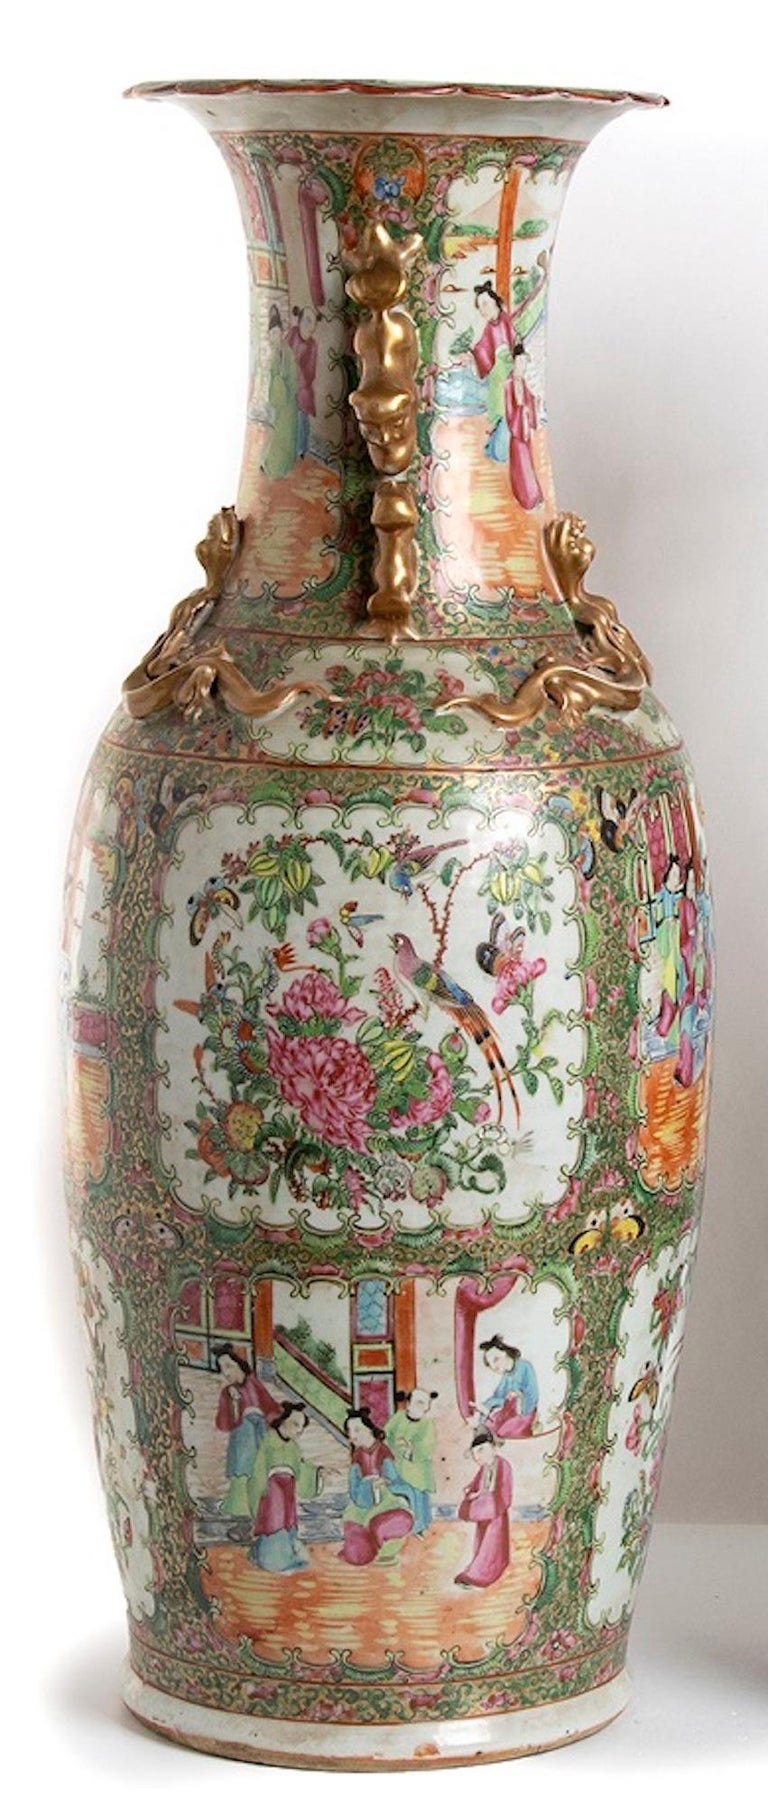 19th Century Pair of Antique Balustrade Porcelain Vases, Qing Dynasty China For Sale